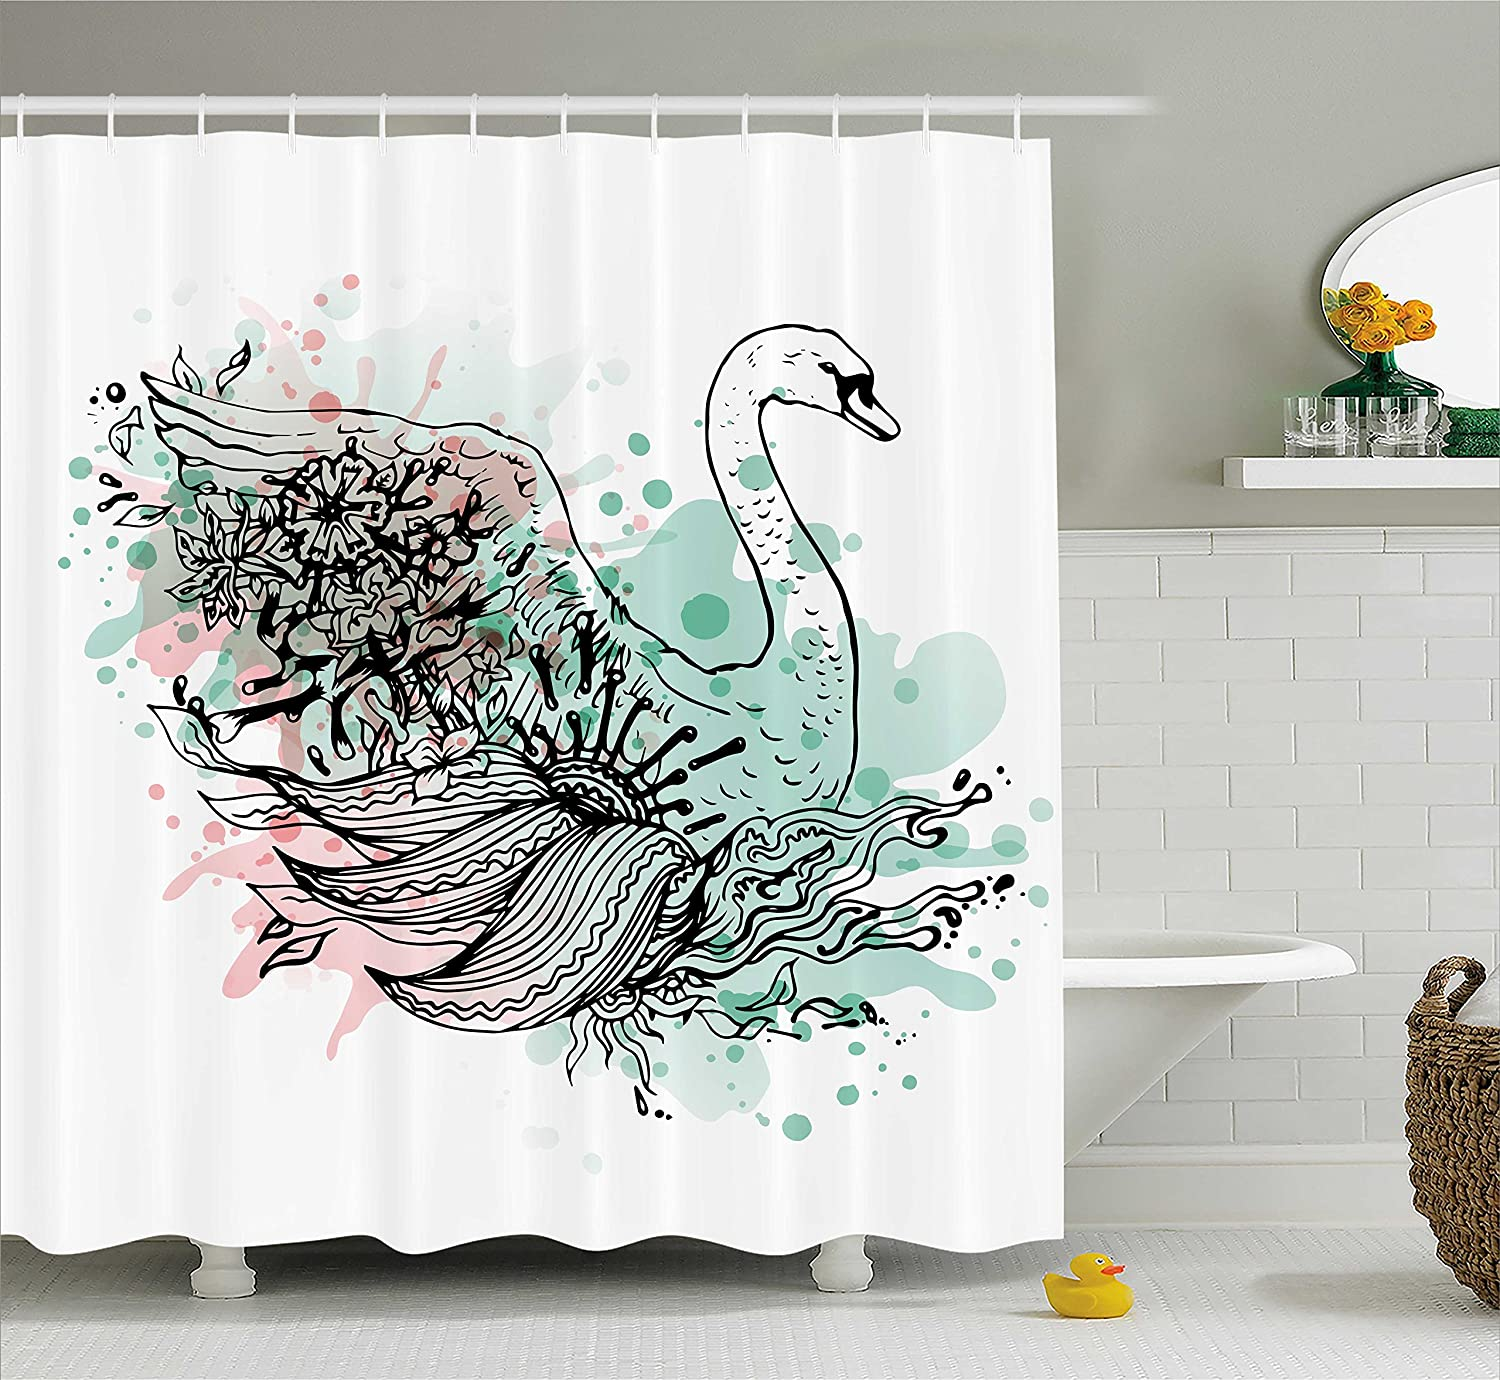 Ambesonne Animal Shower Curtain Hand Sketch Swan Bird Floral Details And Color Splashes Watercolors Fabric Bathroom Decor Set With Hooks 70 Inches